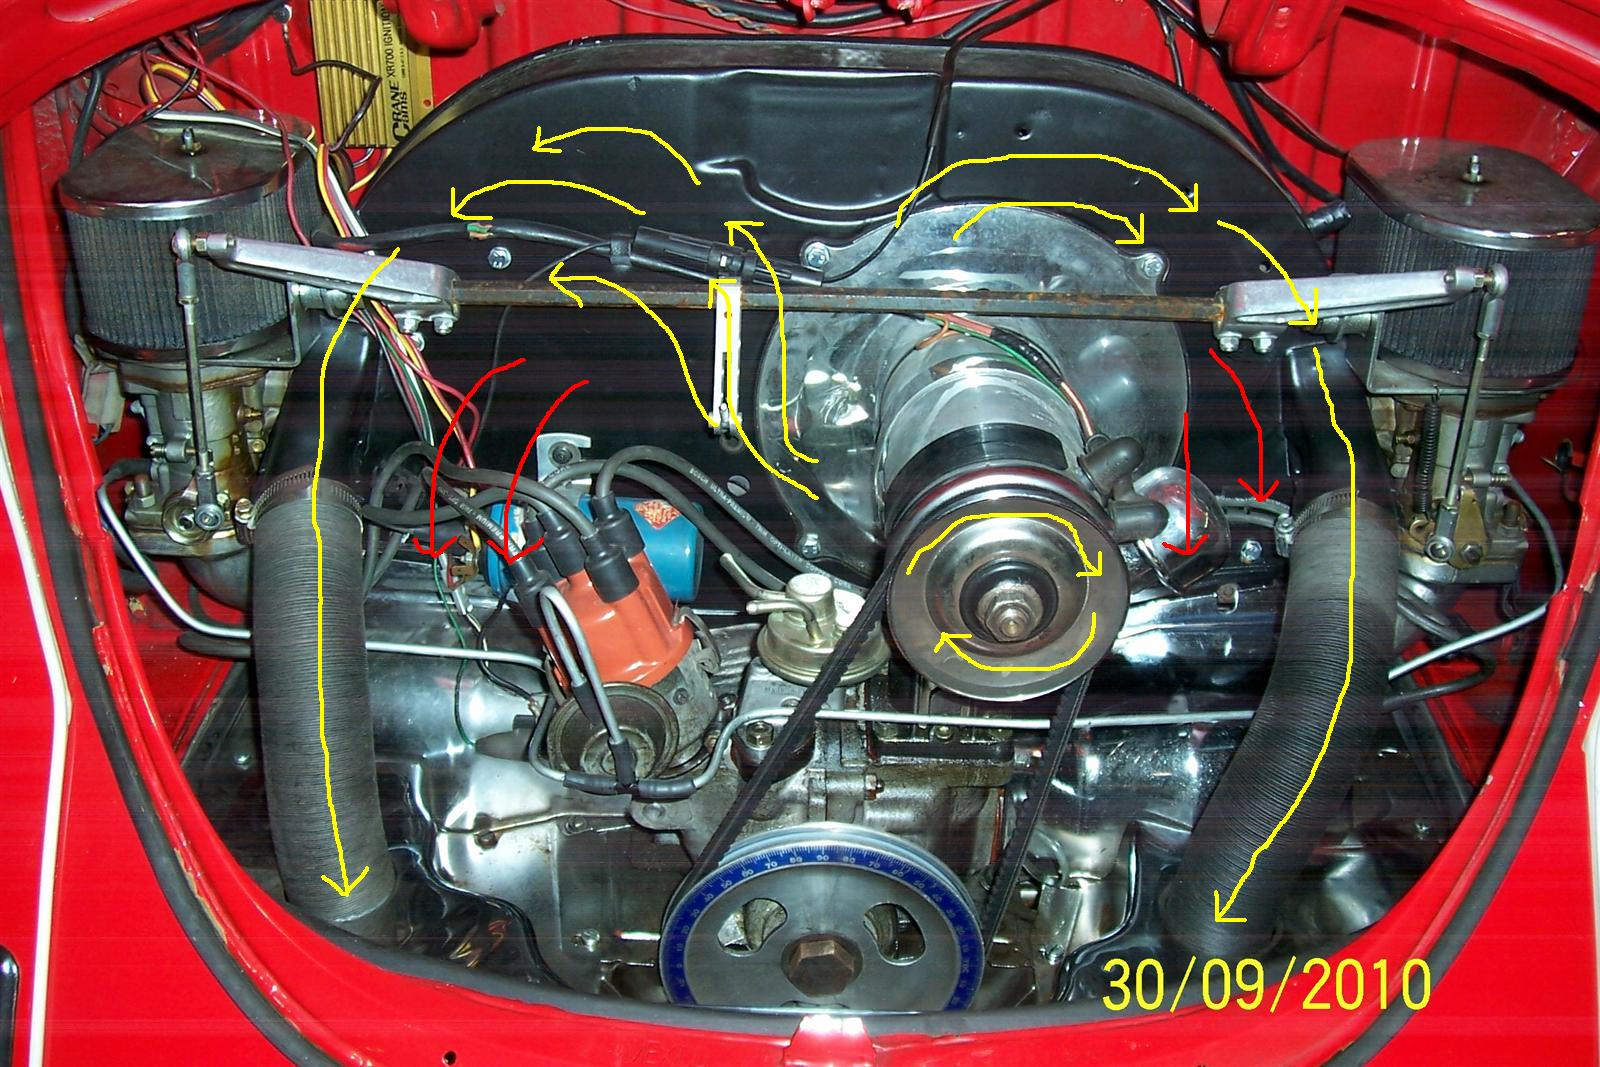 1973 Vw Beetle Engine Diagram Electrical Wiring House 1967 Thesamba Com Late Model Super 1968 Up View Topic Rh 2000